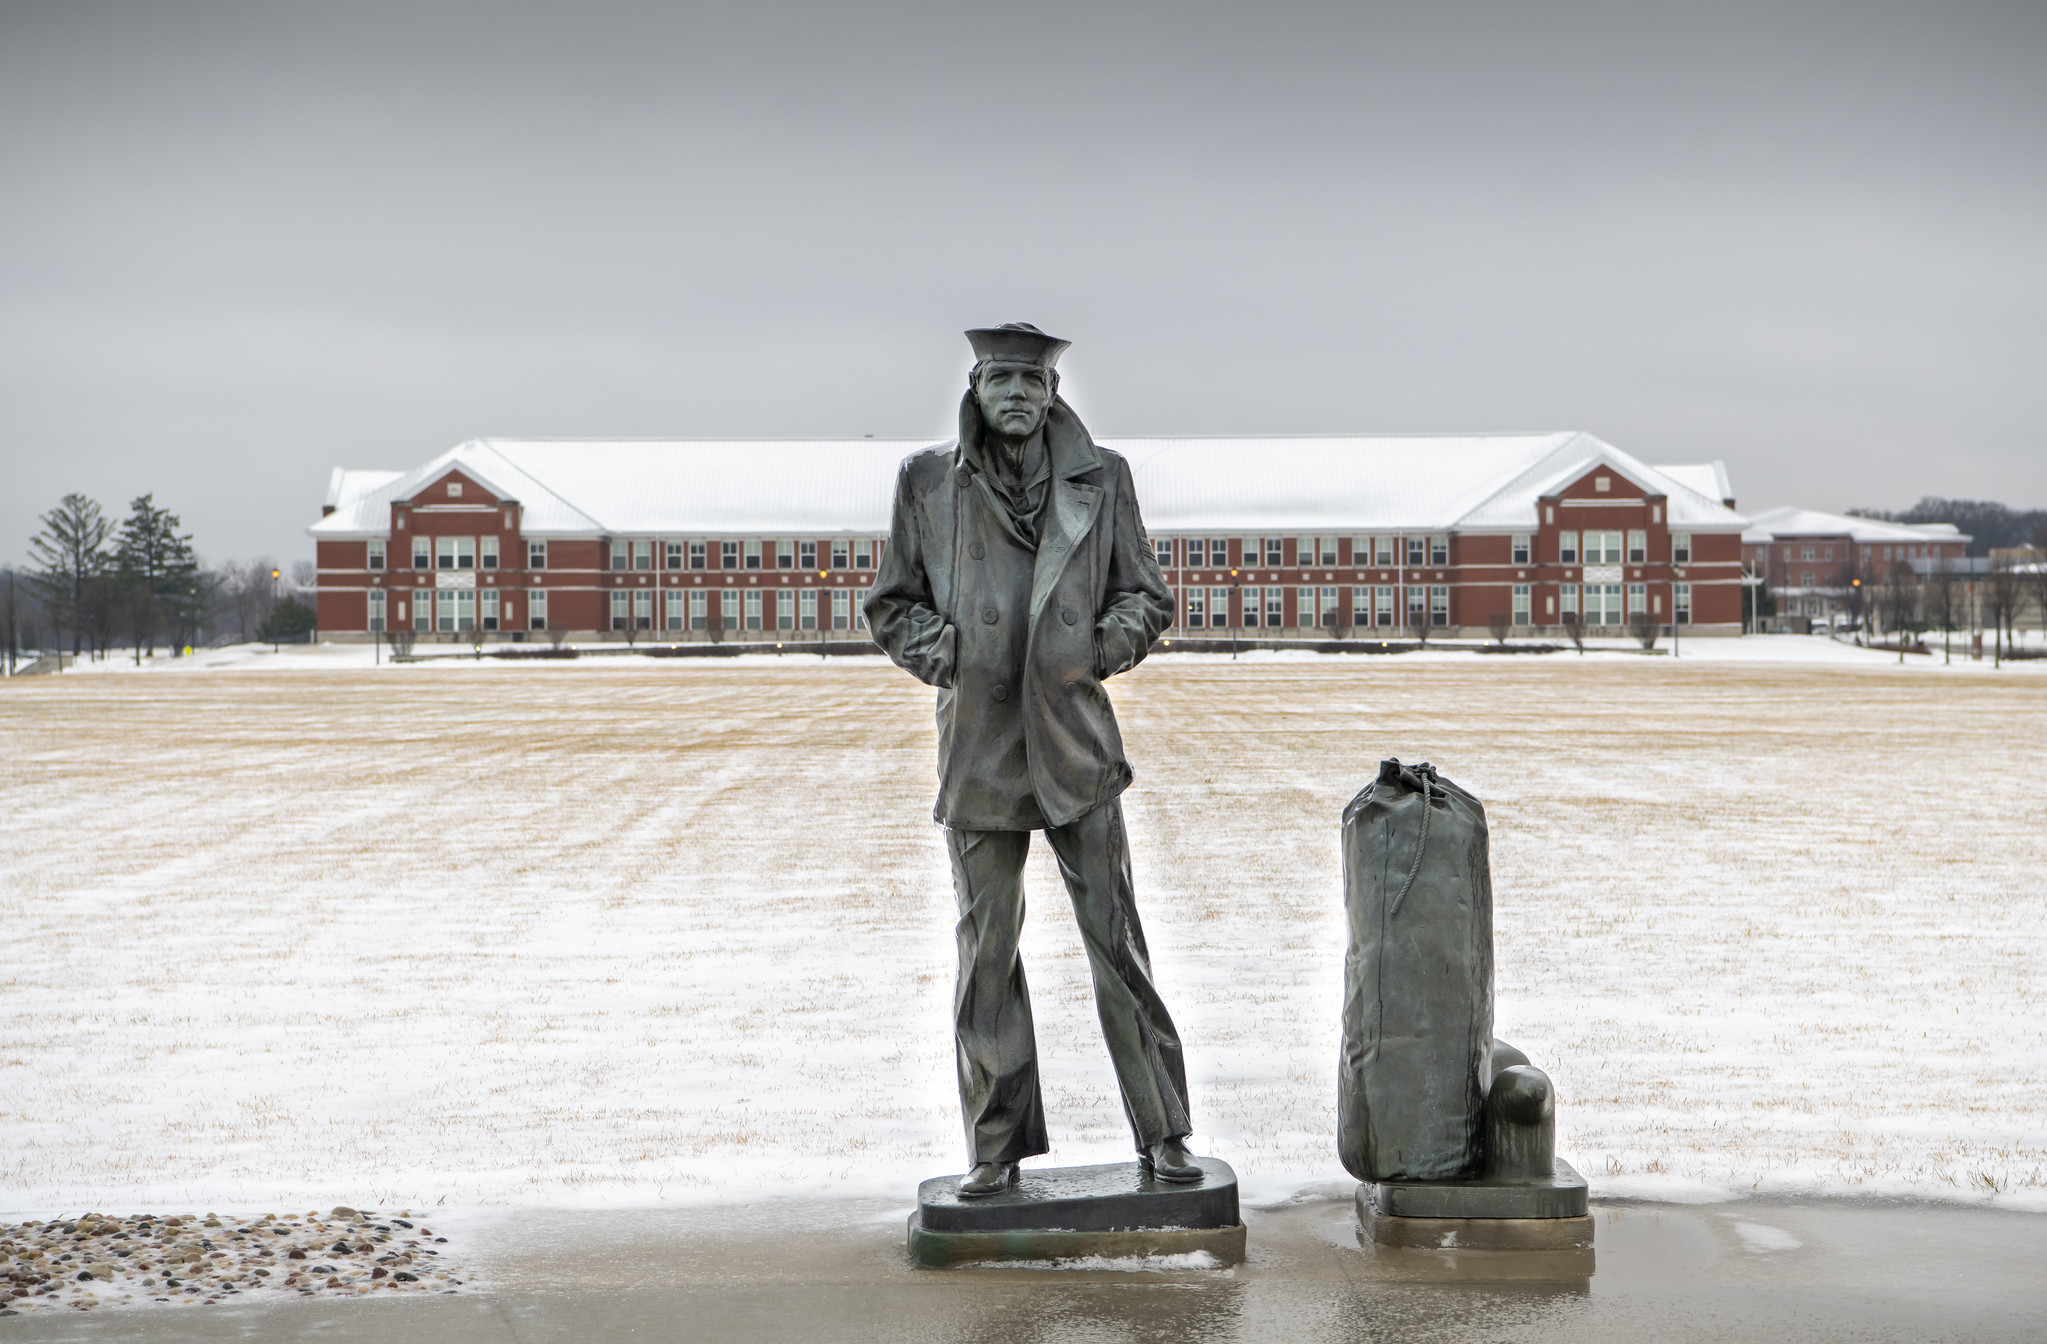 The statue of the Lone Sailor stands on the snow-covered grounds of Recruit Training Command at Great Lakes, Ill., on Dec. 30, 2020. (MC1 Spencer Fling/Navy)